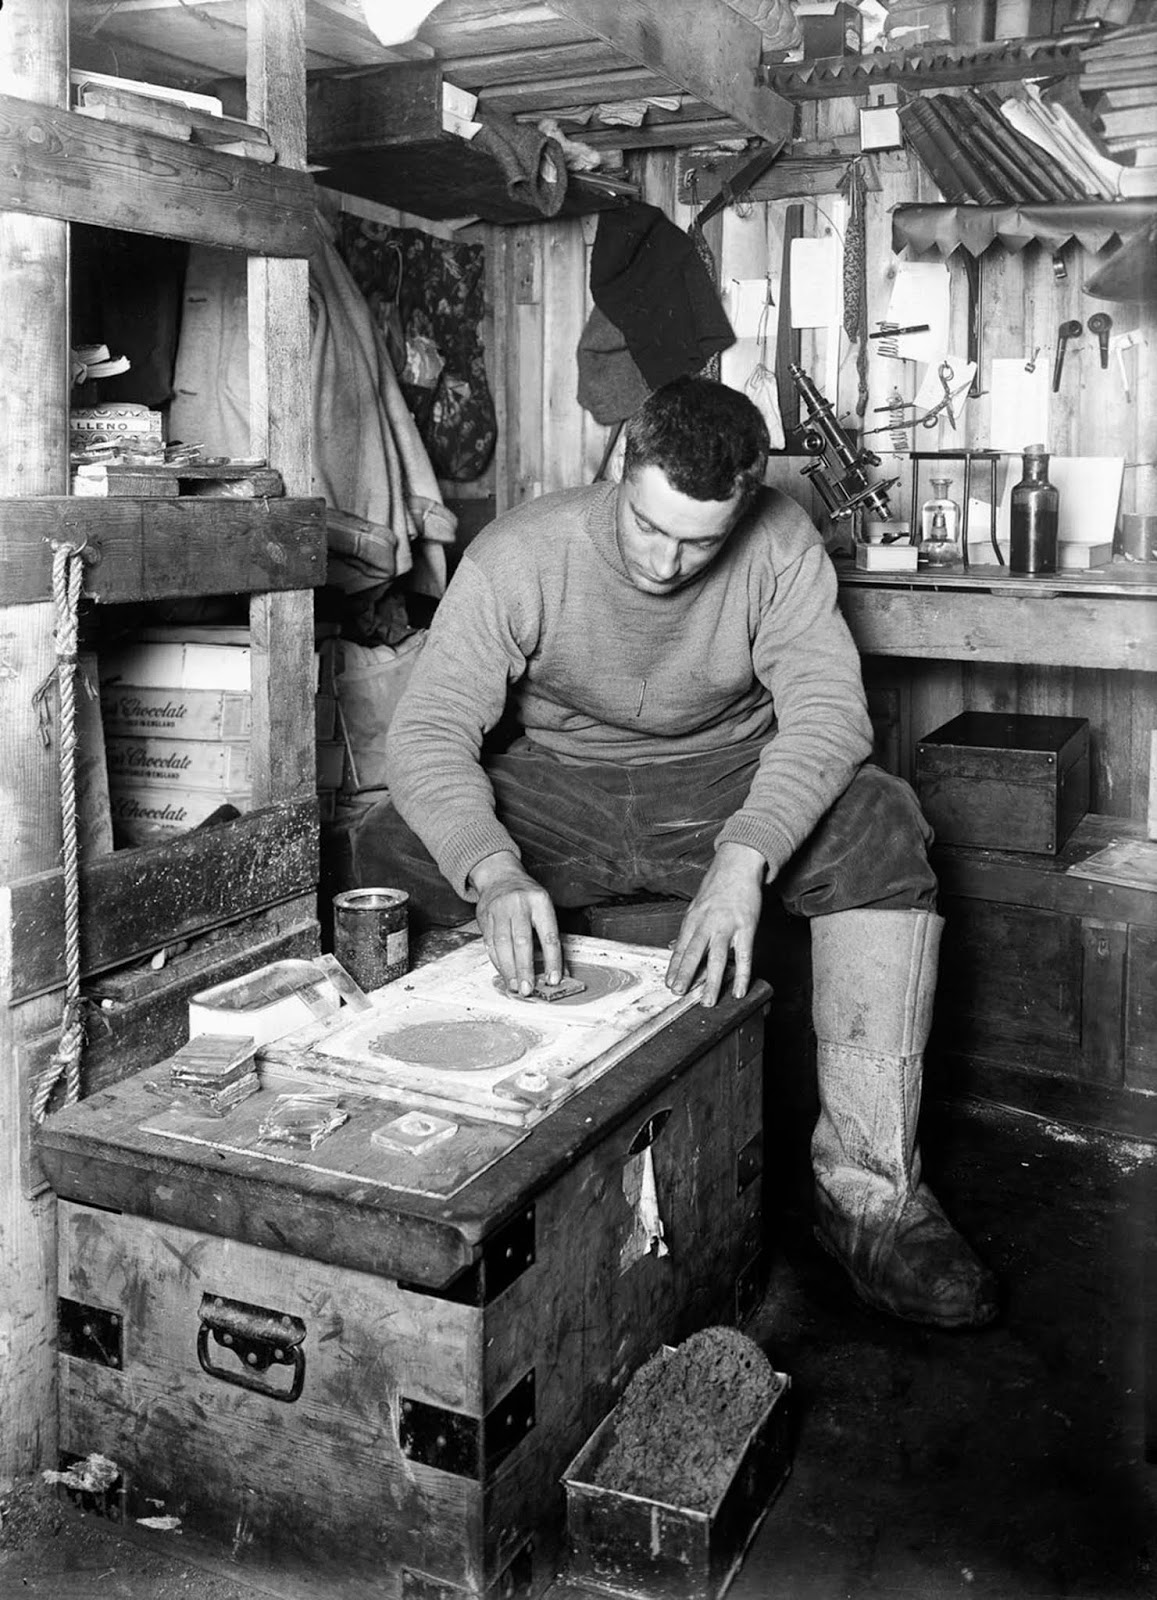 Geologist Frank Debenham grinds stone samples. June 12, 1911.